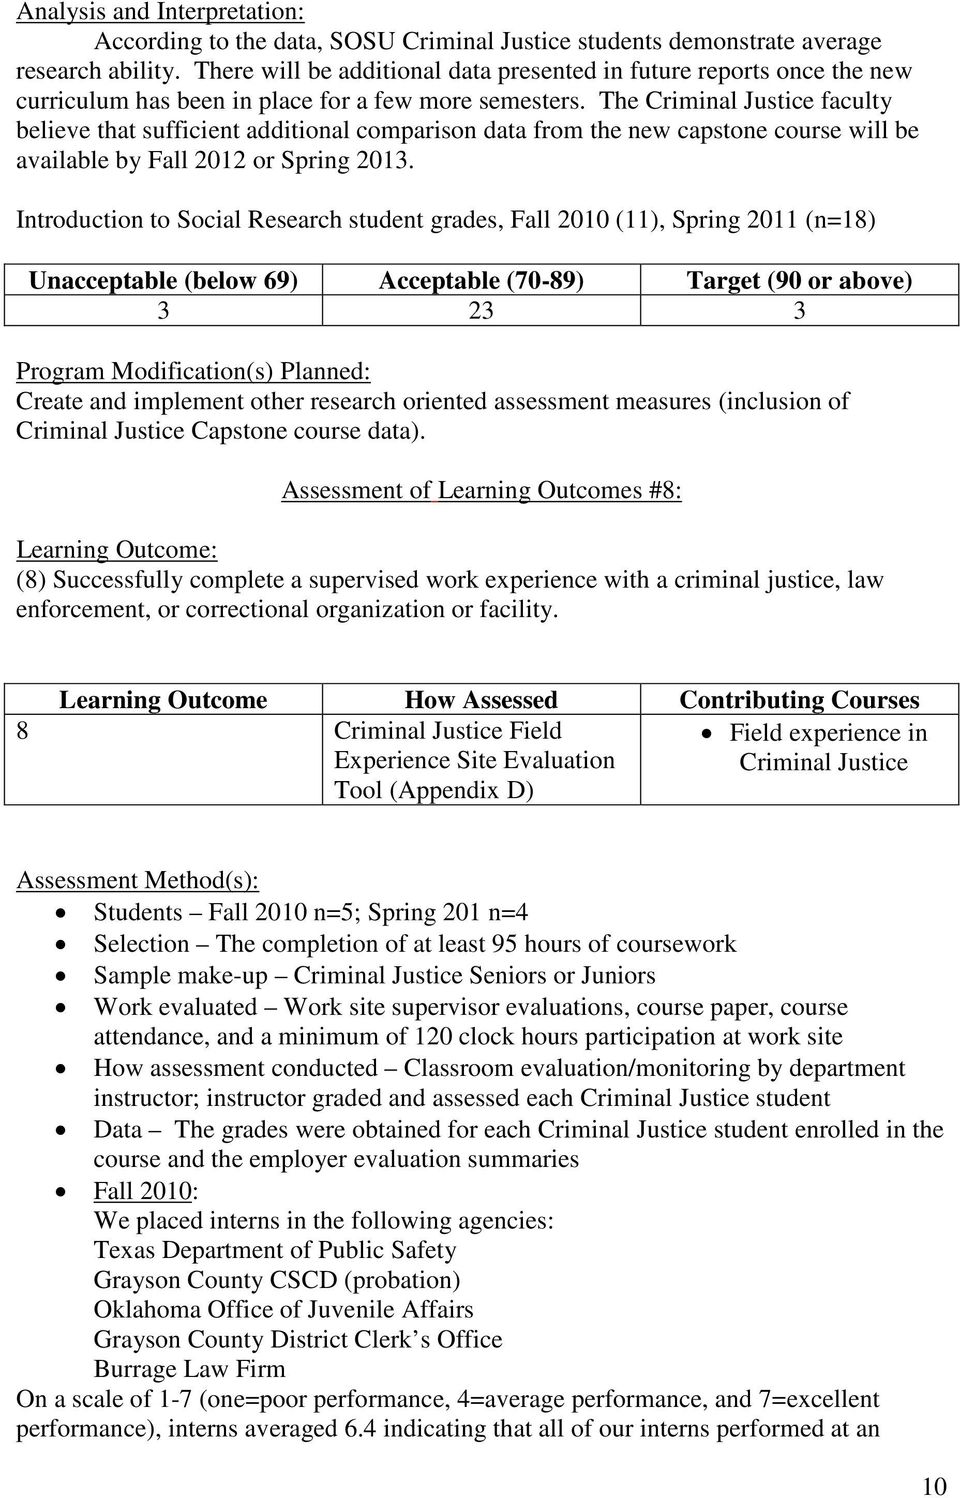 The Criminal Justice faculty believe that sufficient additional comparison data from the new capstone course will be available by Fall 2012 or Spring 2013.